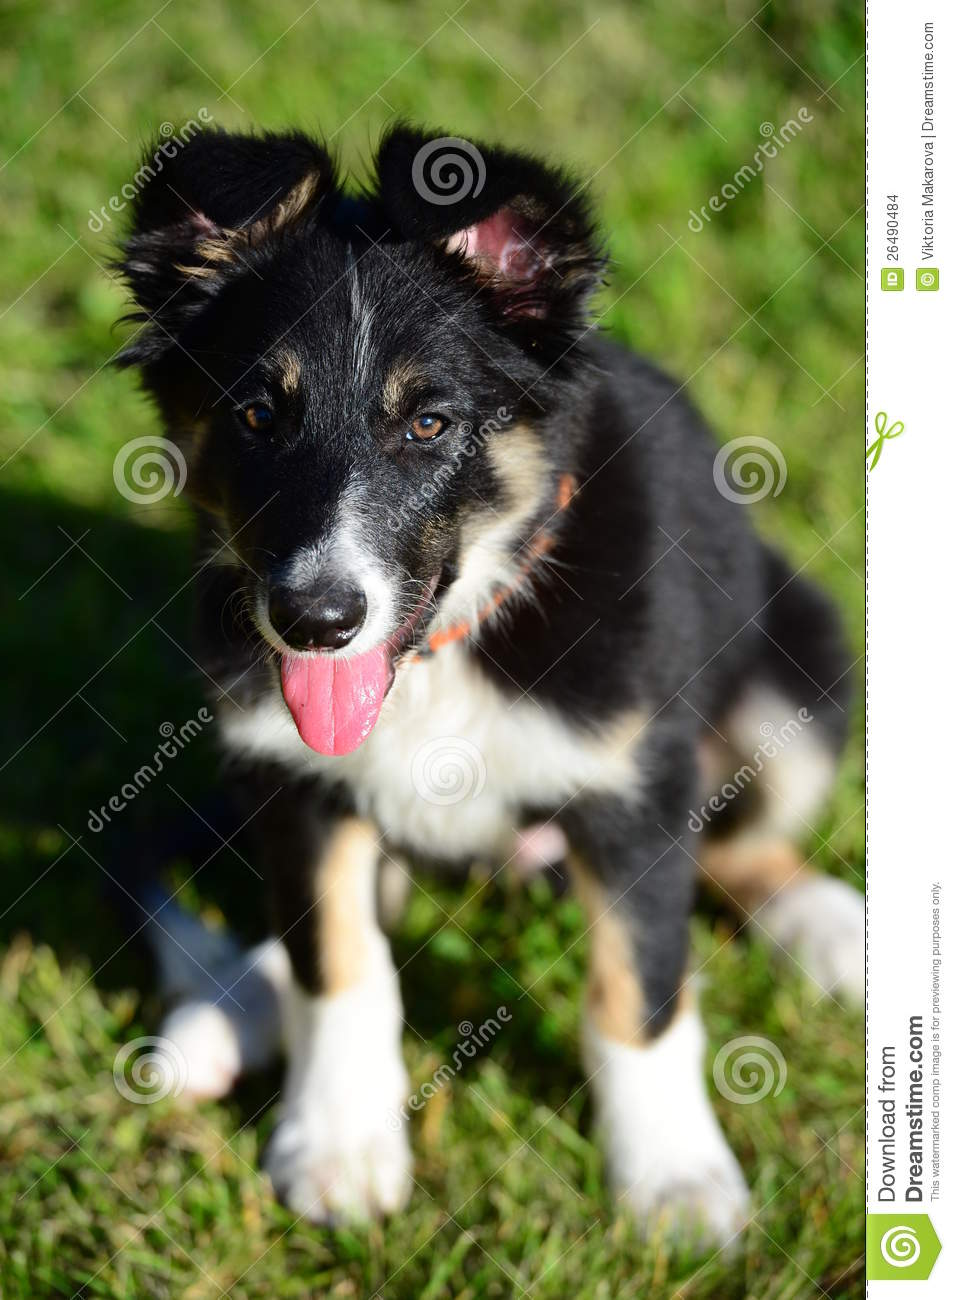 965 Border Collie Tricolor Photos Free Royalty Free Stock Photos From Dreamstime